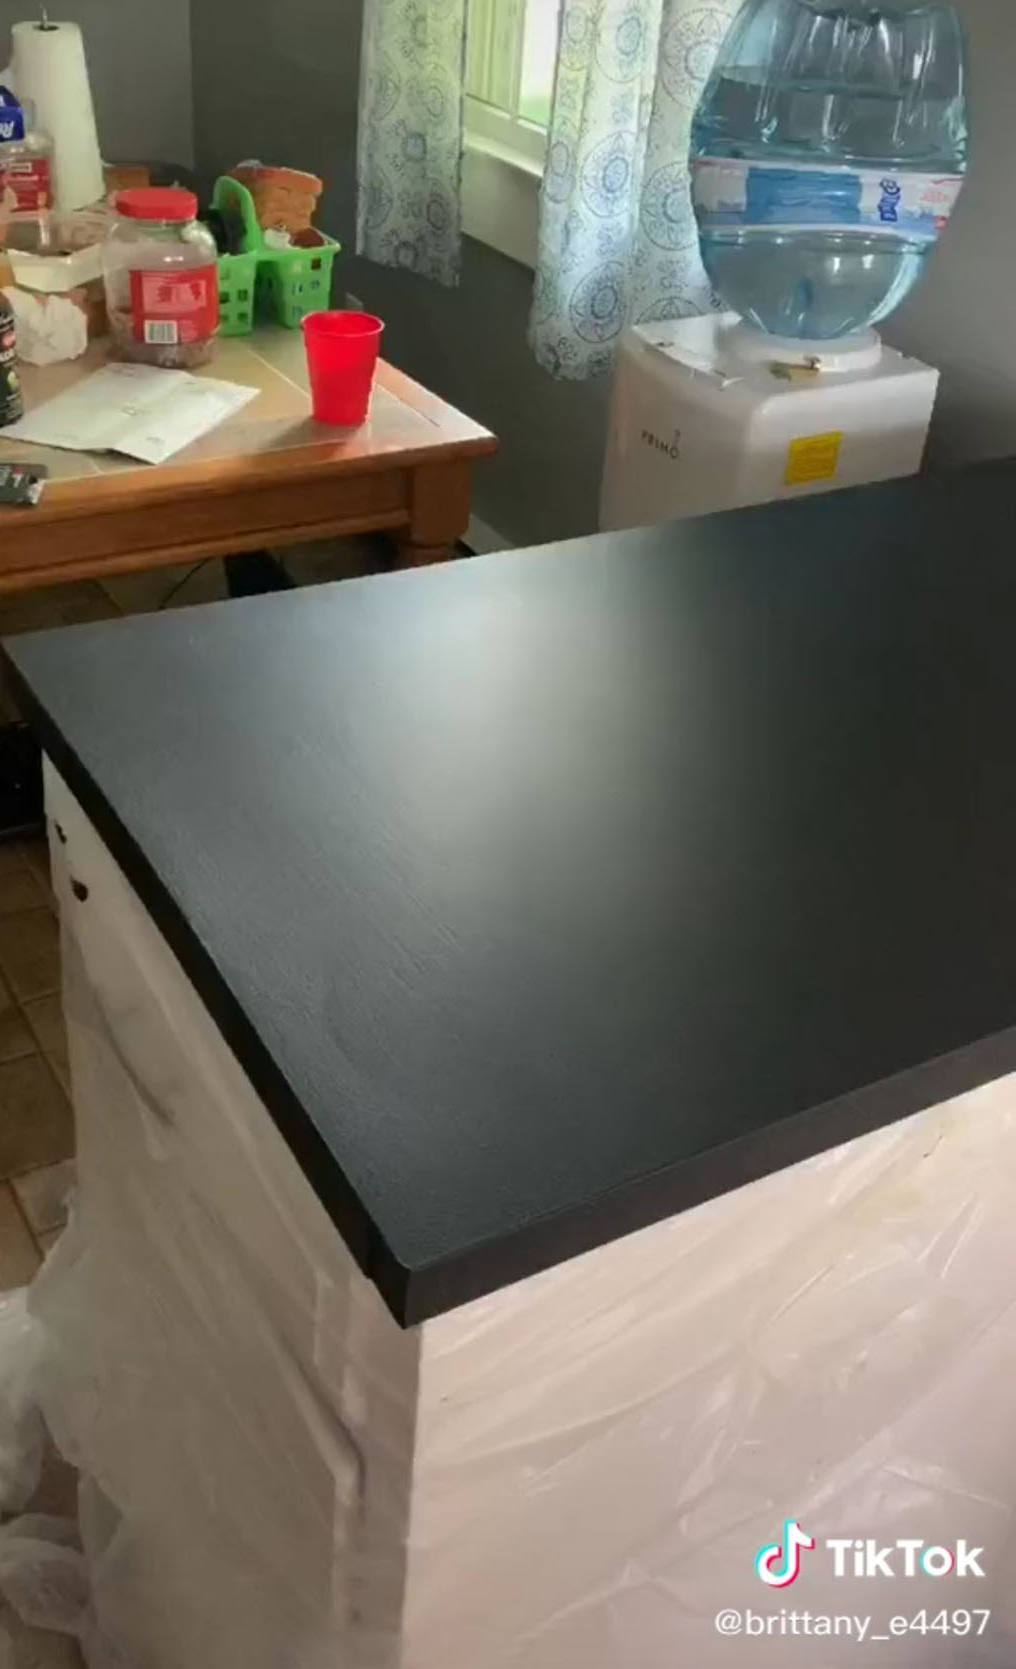 Teacher Desperate For 2 5k Marble Worktops Fakes Her Own With Spray Paint And You Won T Believe How Easy It Was